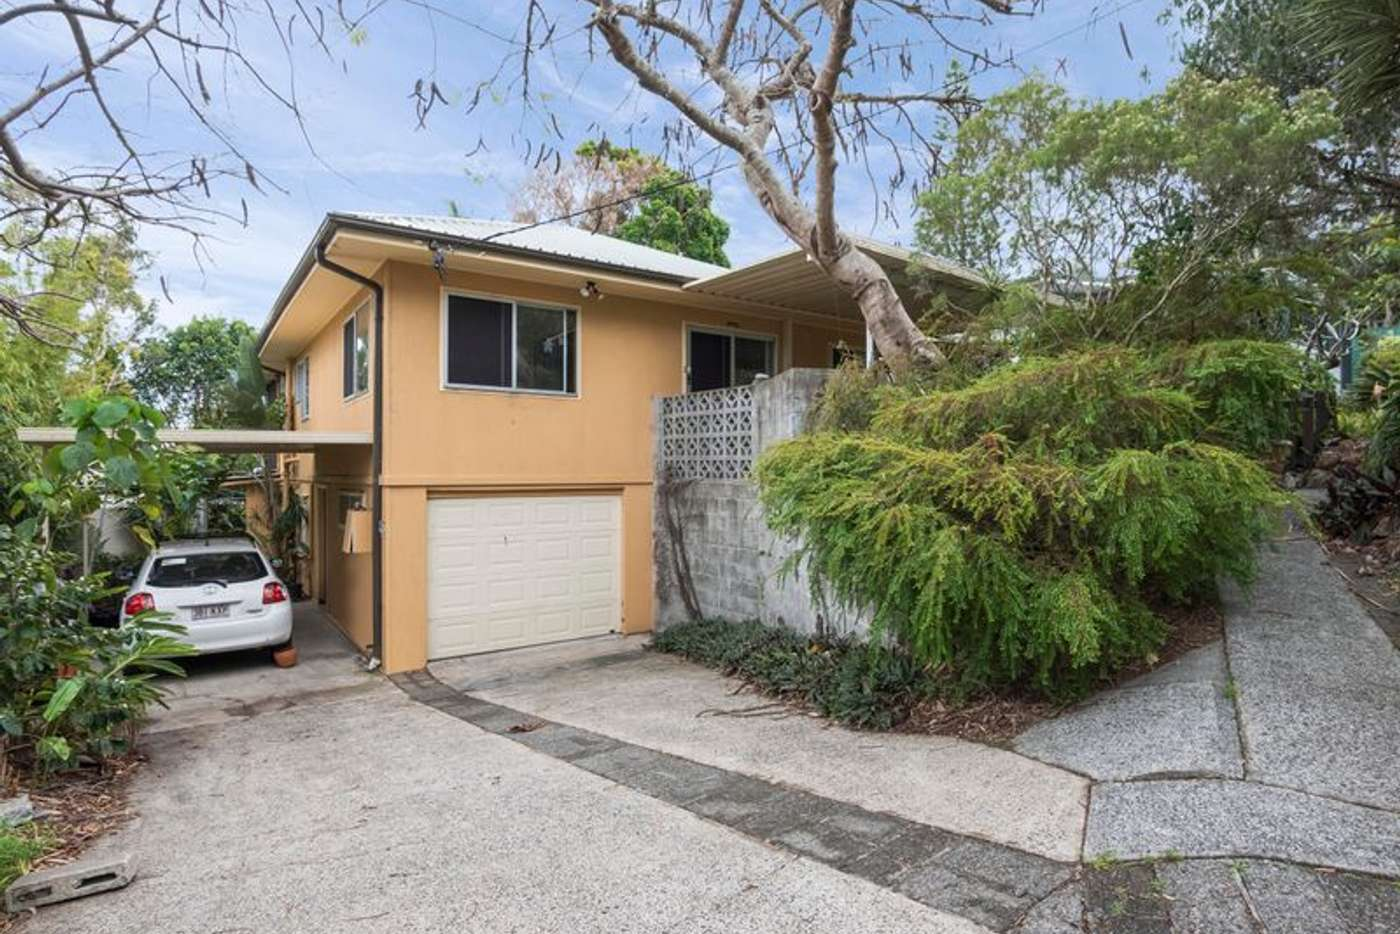 Main view of Homely flat listing, 4A Wairoo Street, Burleigh Heads QLD 4220